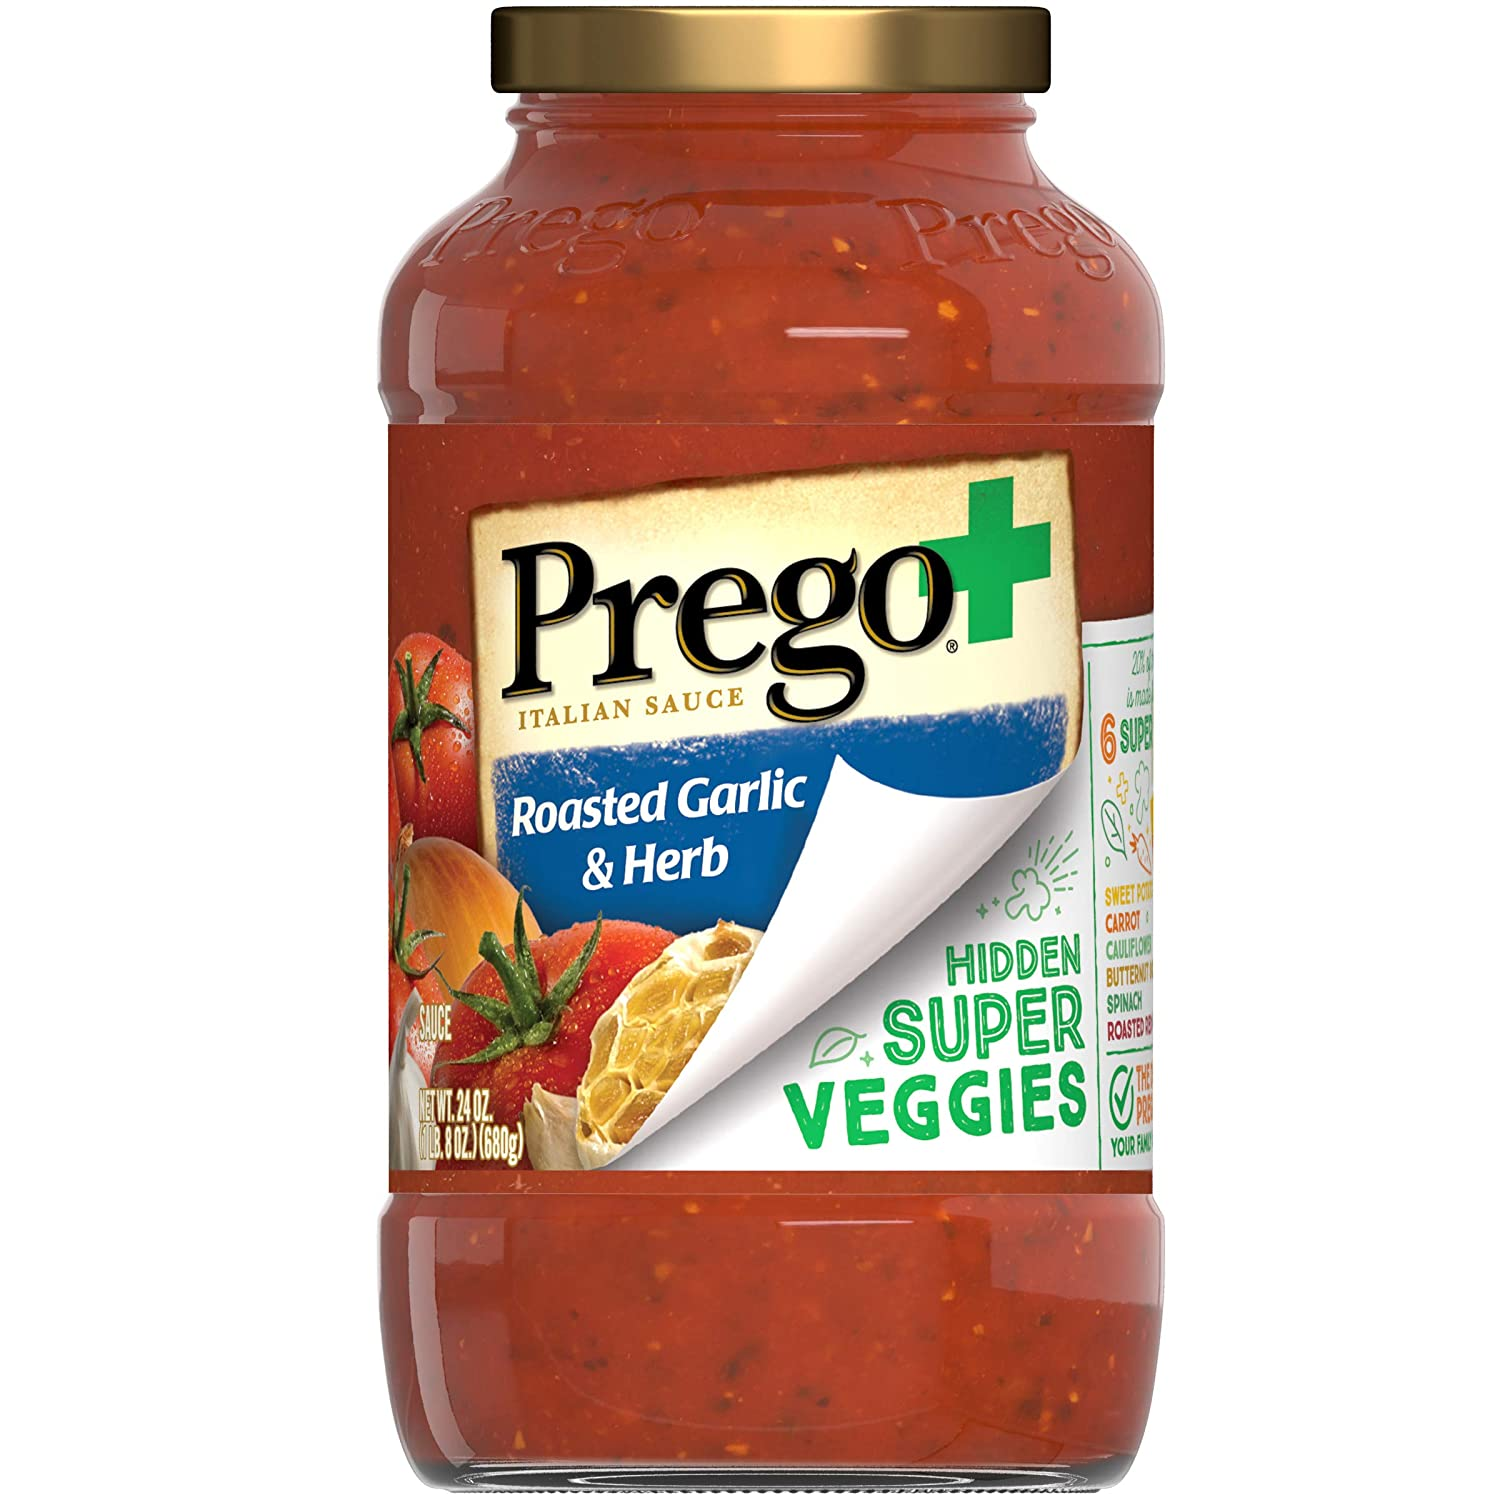 Prego+ Hidden Super Veggies Italian Tomato Sauce with Roasted Garlic and Herb, 24 Ounce Jar (Pack of 6)